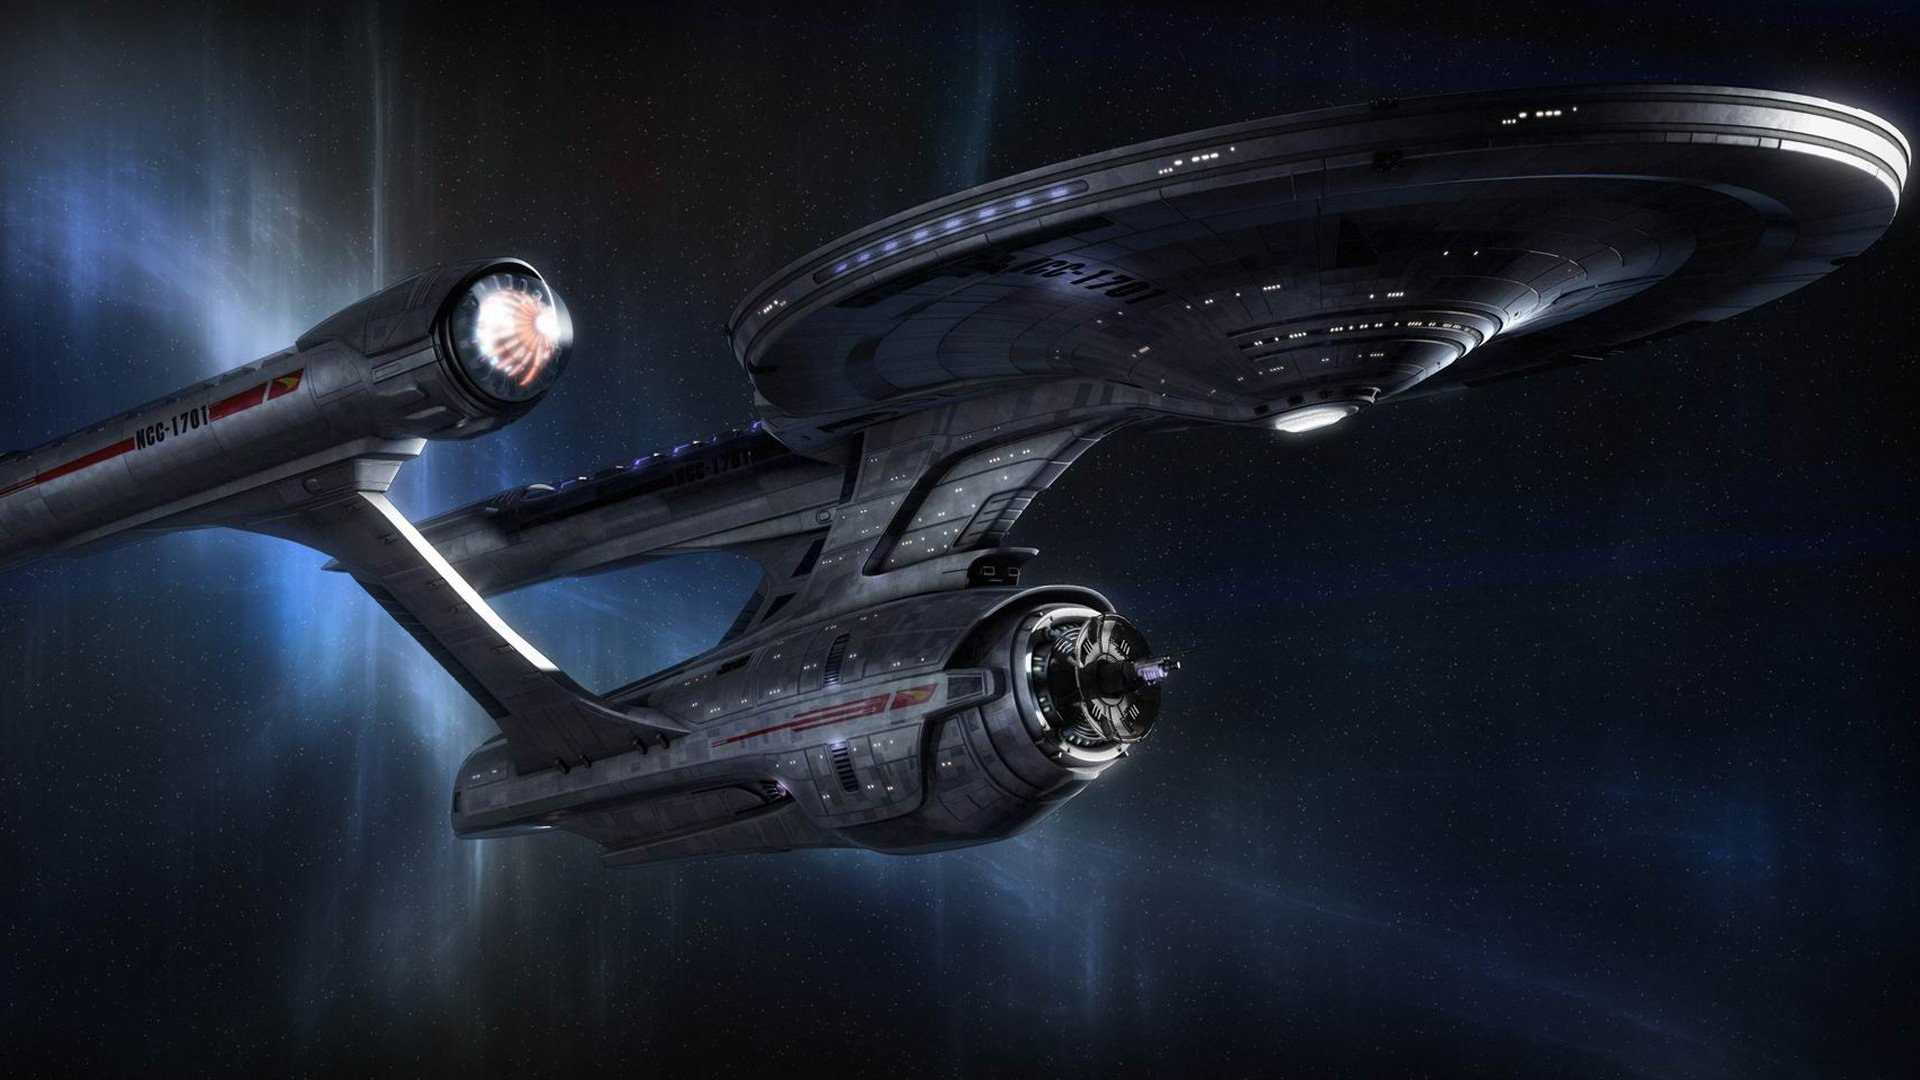 Star Trek Classic NCC 1701 Vehicle Wallpapers HD Wallpapers 1920x1080